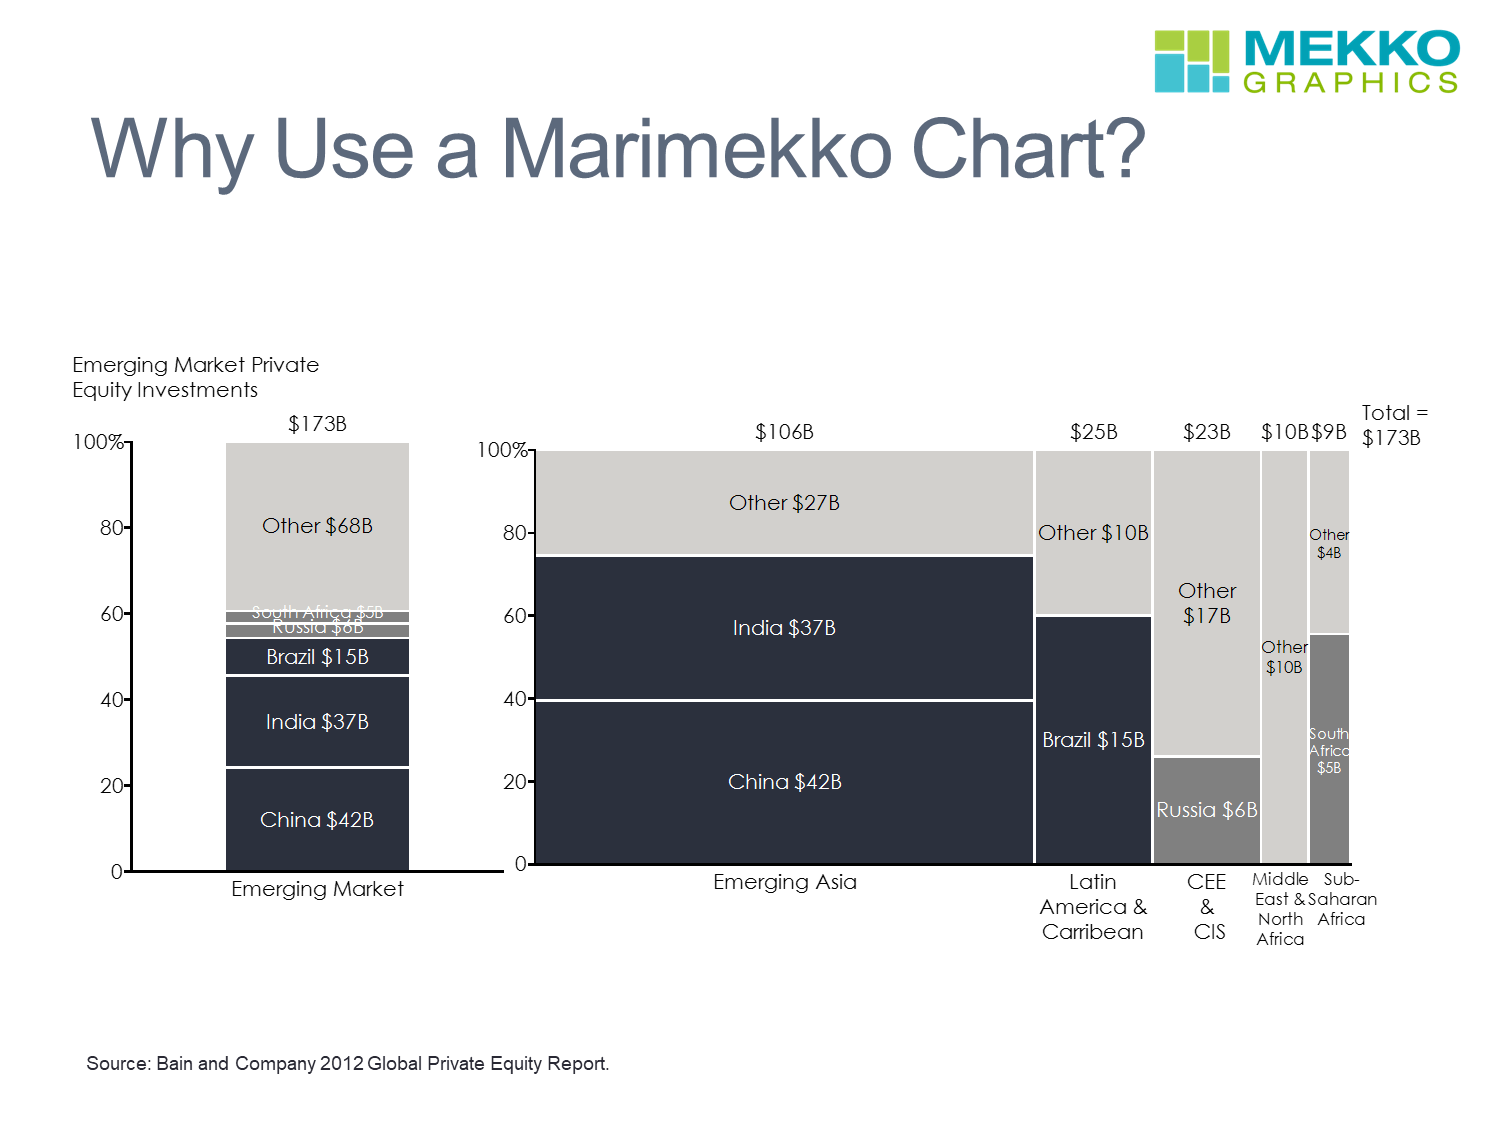 Stacked Bar Chart and Marimekko Chart/Mekko Chart of Private Equity Investments in Emerging Markets